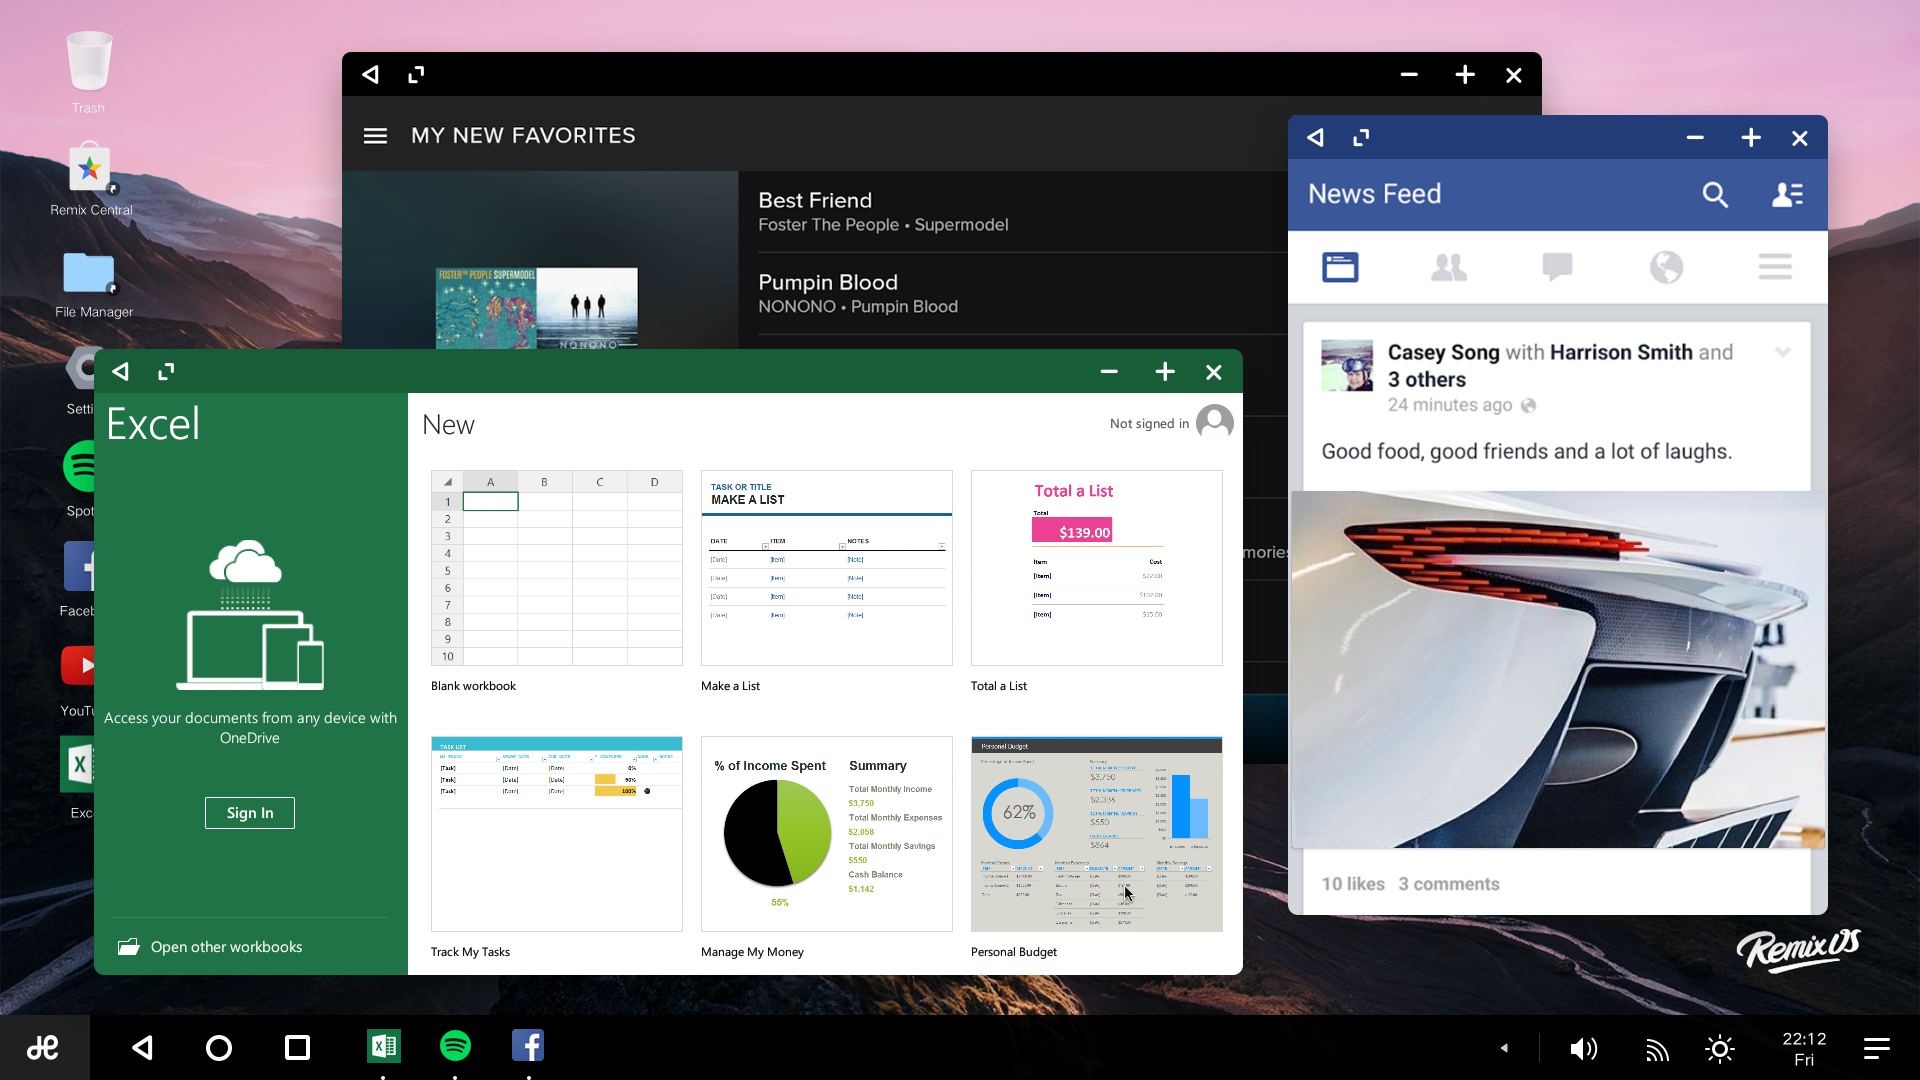 remix os for pc upgraded to marshmallow supports more